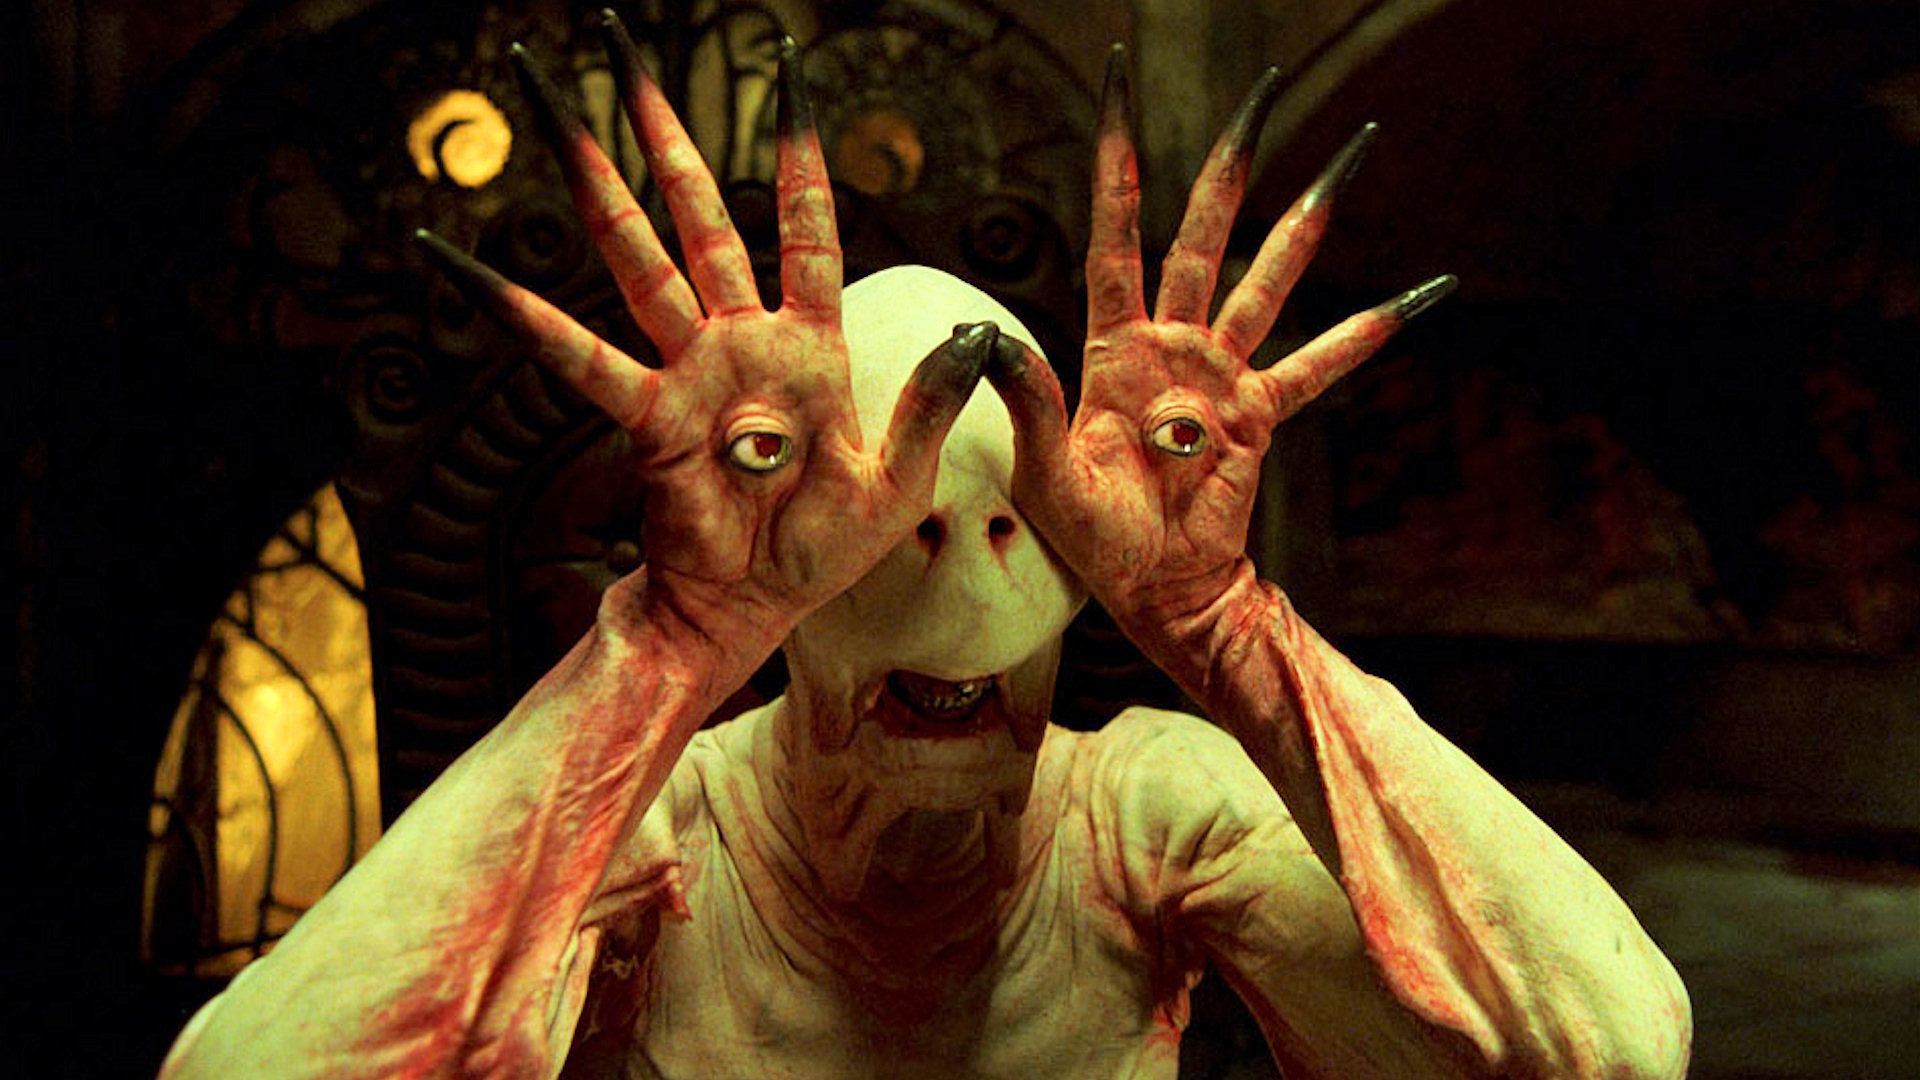 Pan S Labyrinth Wallpapers 1920x1080 Full Hd 1080p Desktop Backgrounds